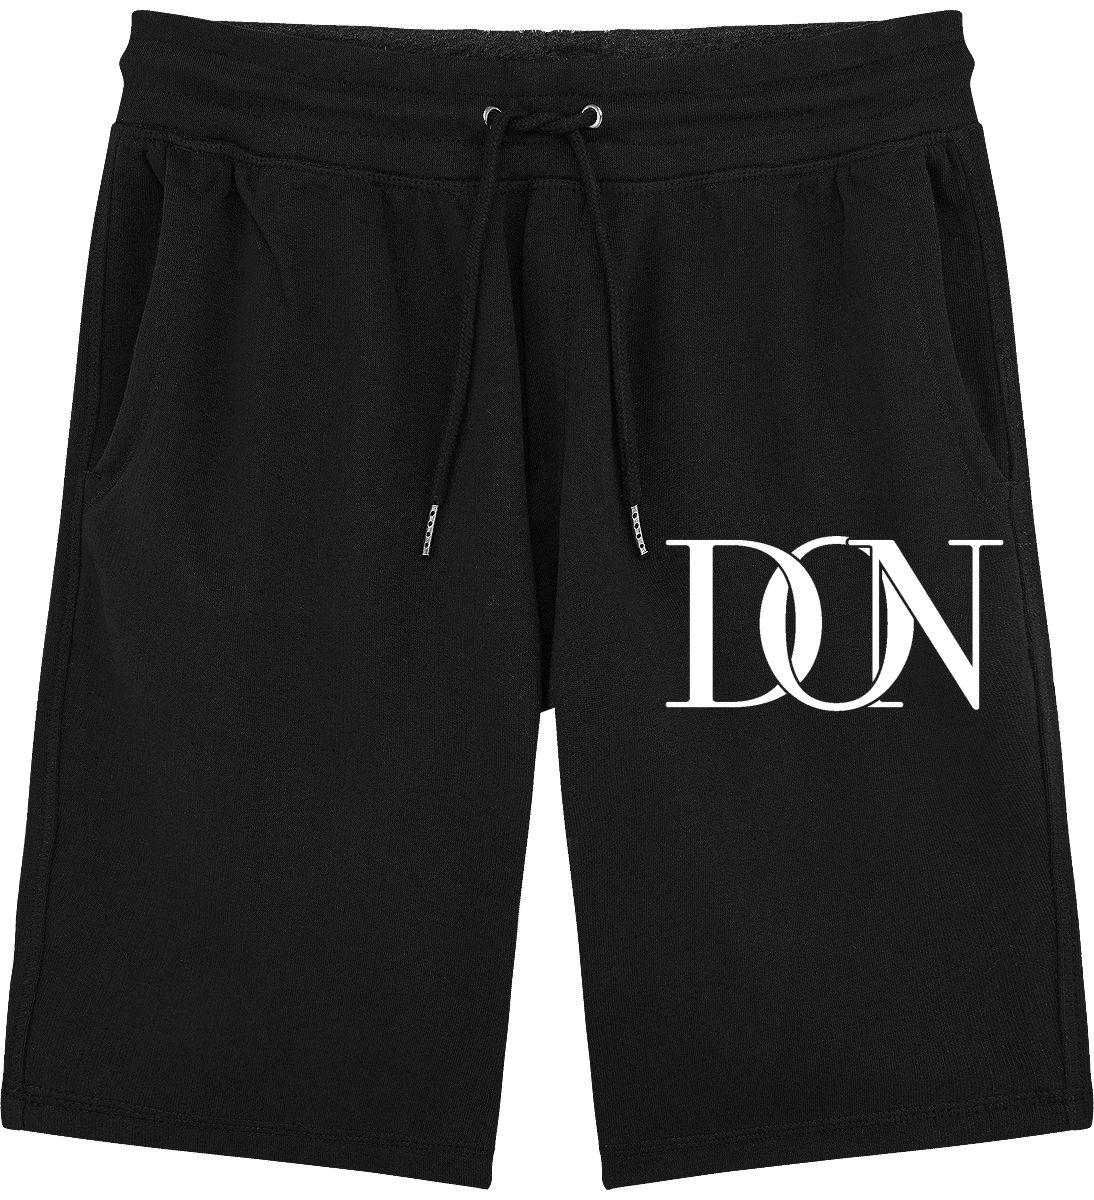 Men's Official DON Signature Light Jogging Shorts